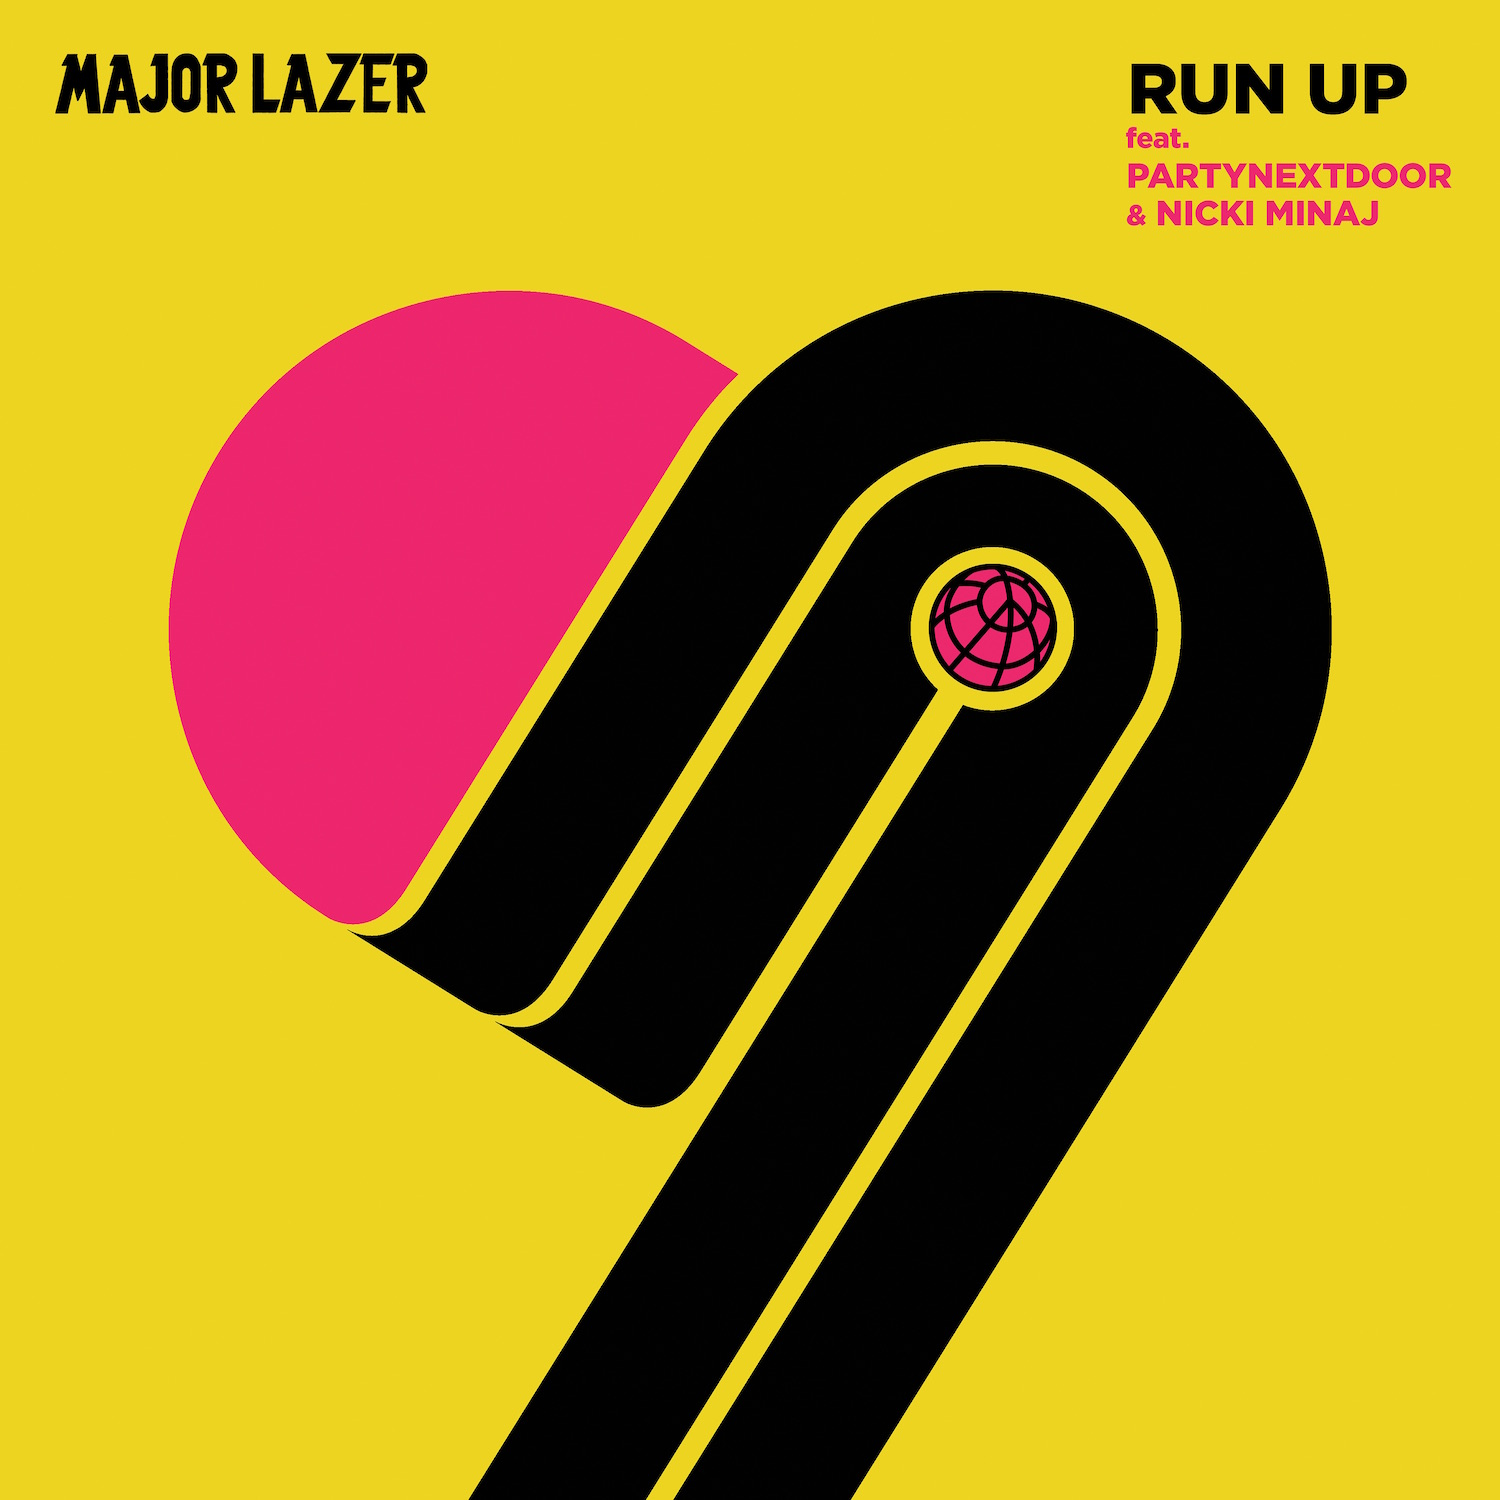 Major Lazer, Nicki Minaj, and PartyNextDoor join forces on new party jam Run Up    listen